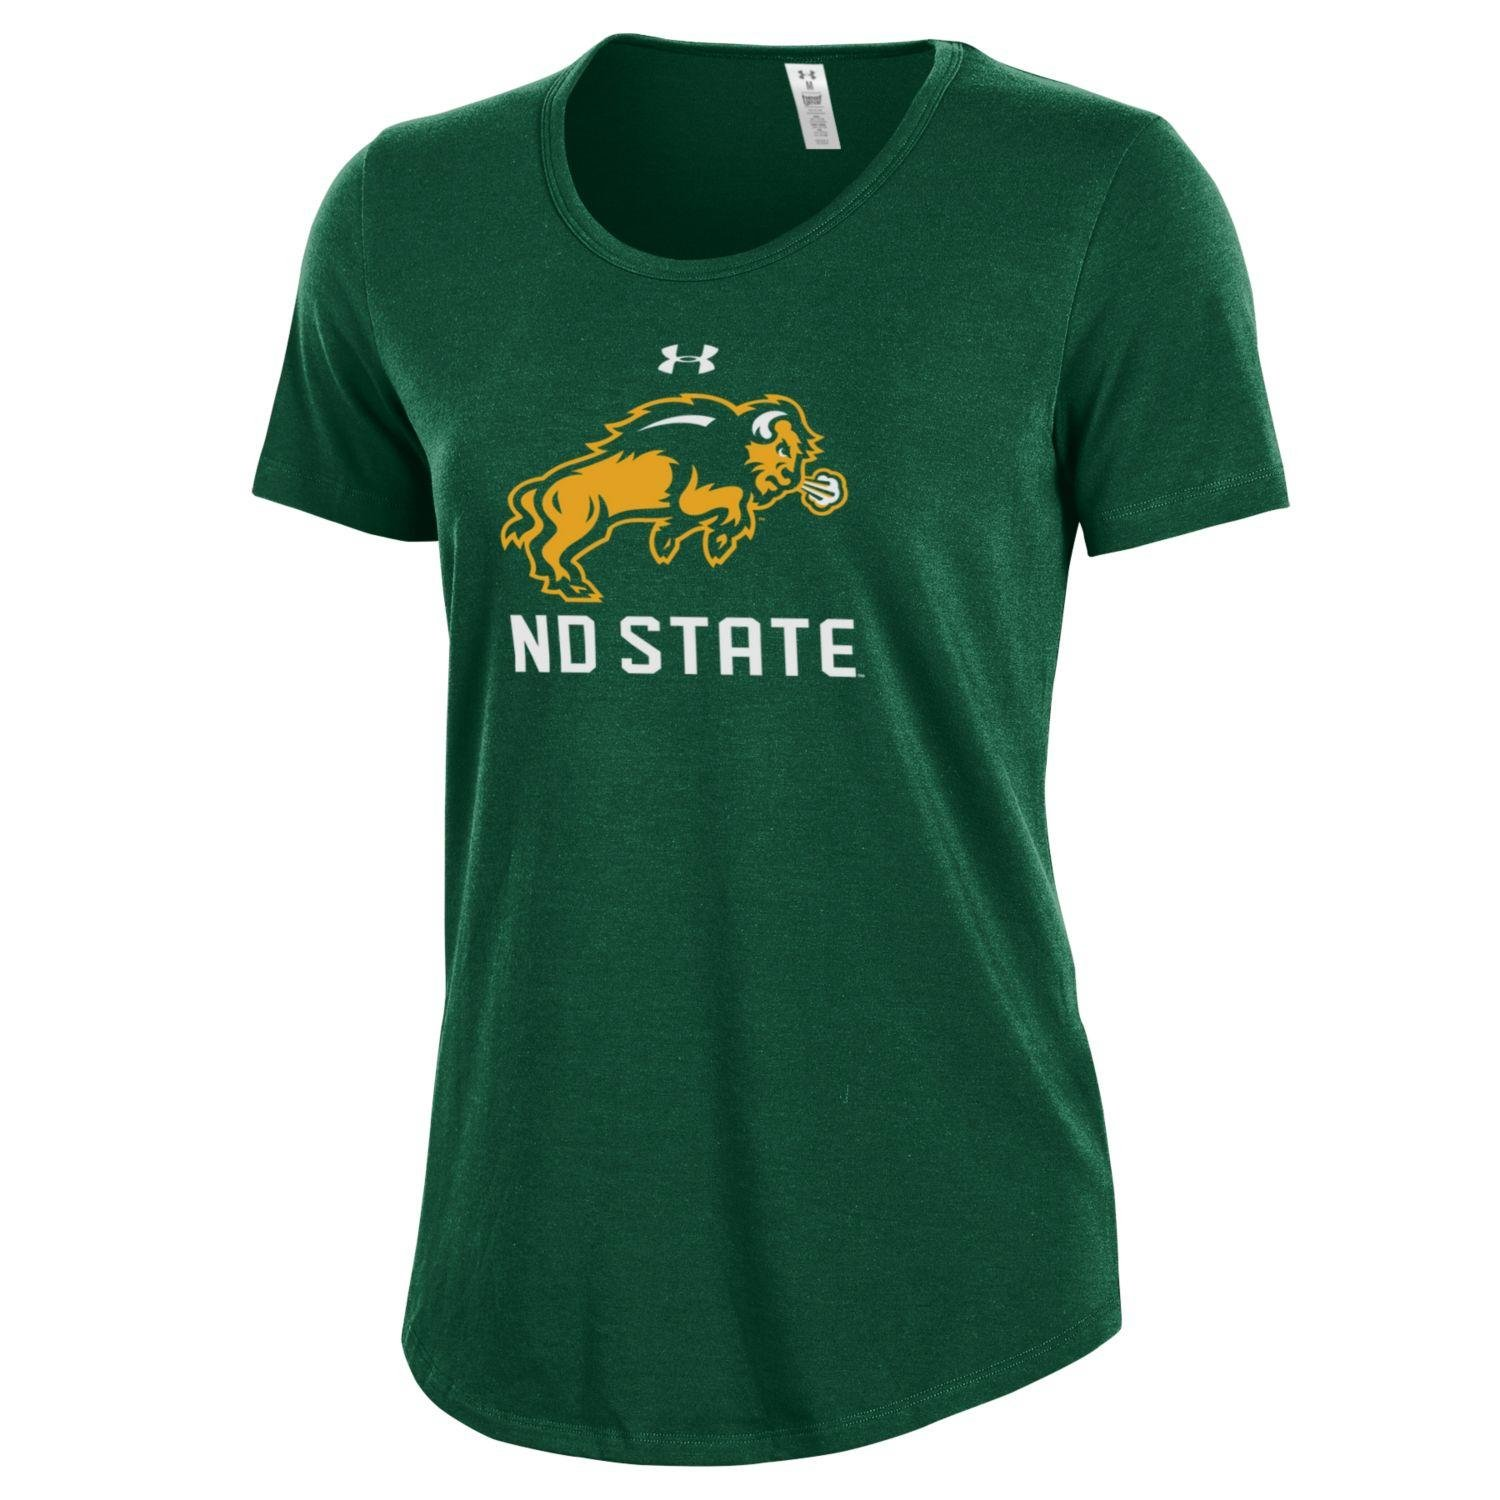 Small Under Armour NCAA North Dakota State Womens Short Sleeve Charged Cotton Tee Dark Green